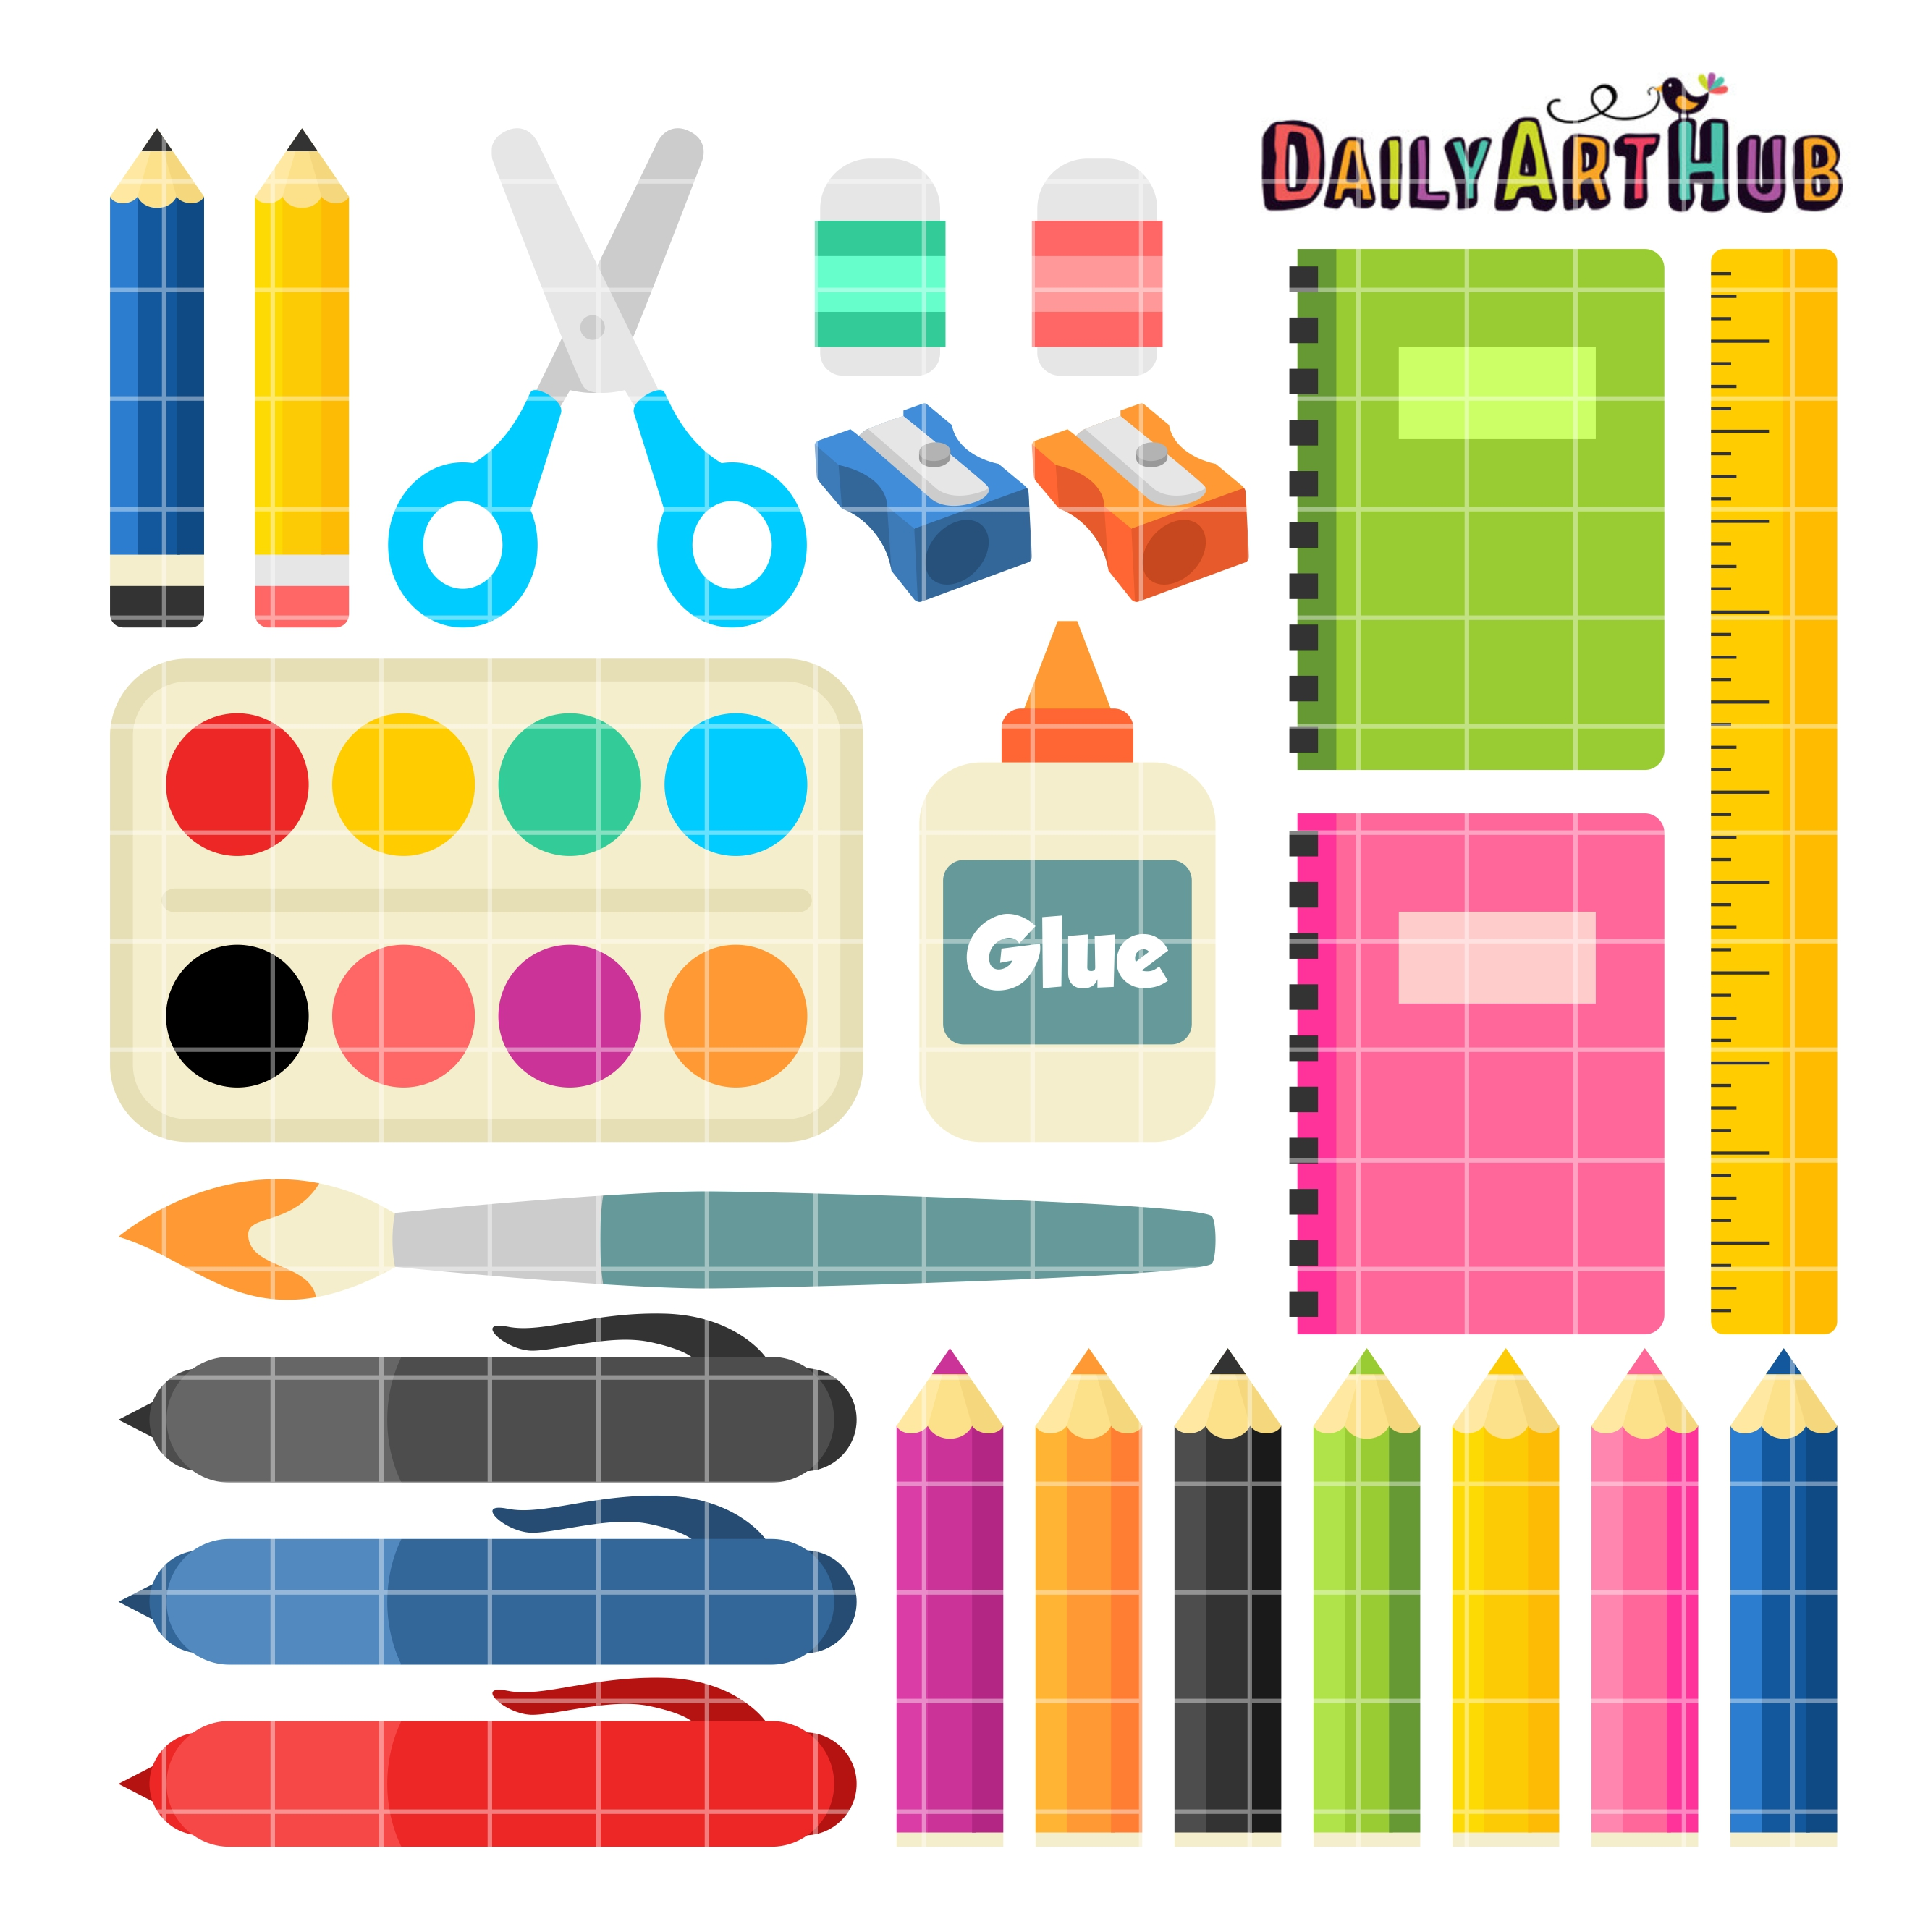 School supplies clipart image picture black and white library School supplies scale clipart - ClipartFest picture black and white library